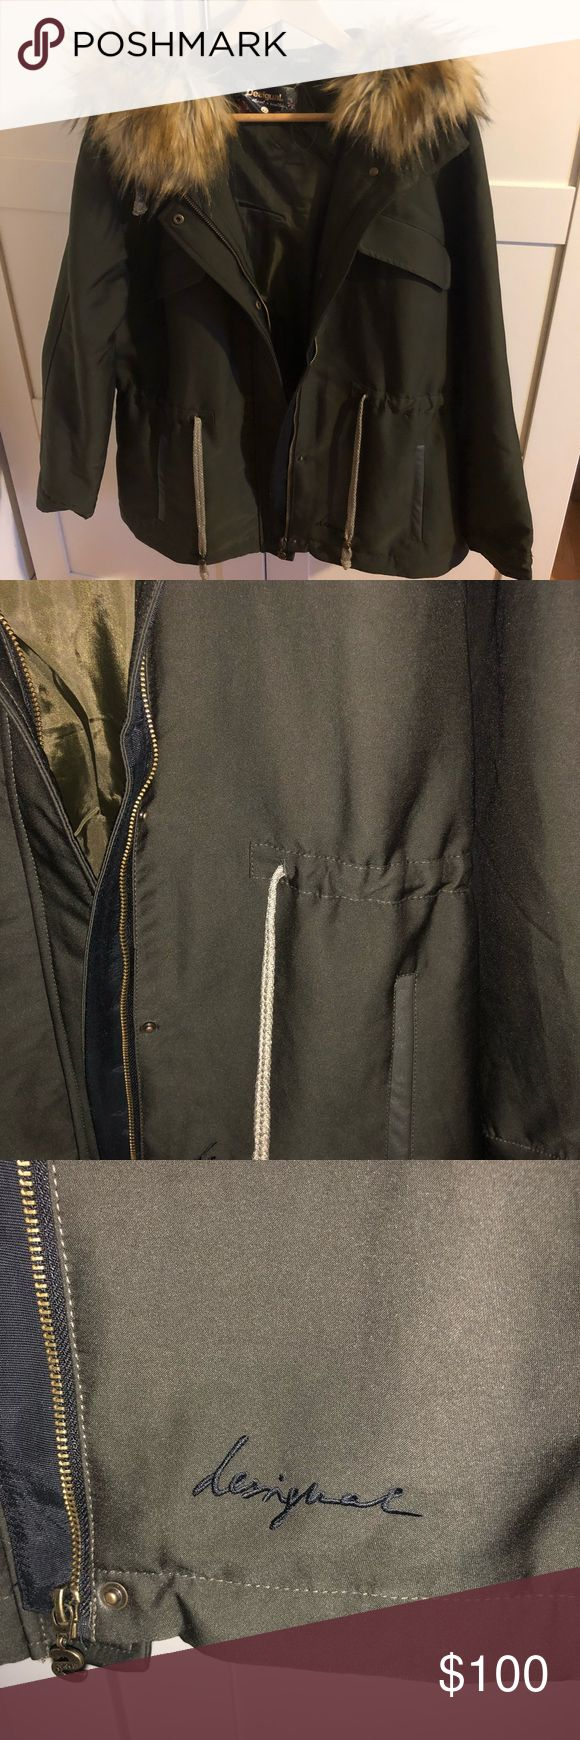 Desigual Women's 3/4 Length Coat 3/4 length coat.  Only worn twice, like brand new.  Zip front, snap front closure. Faux leather detail at pocket.  Front tie waist.  Wool lined hood w/ faux fur. Beautiful embroidery on back of jacket. Olive green jacket. Desigual Jackets & Coats